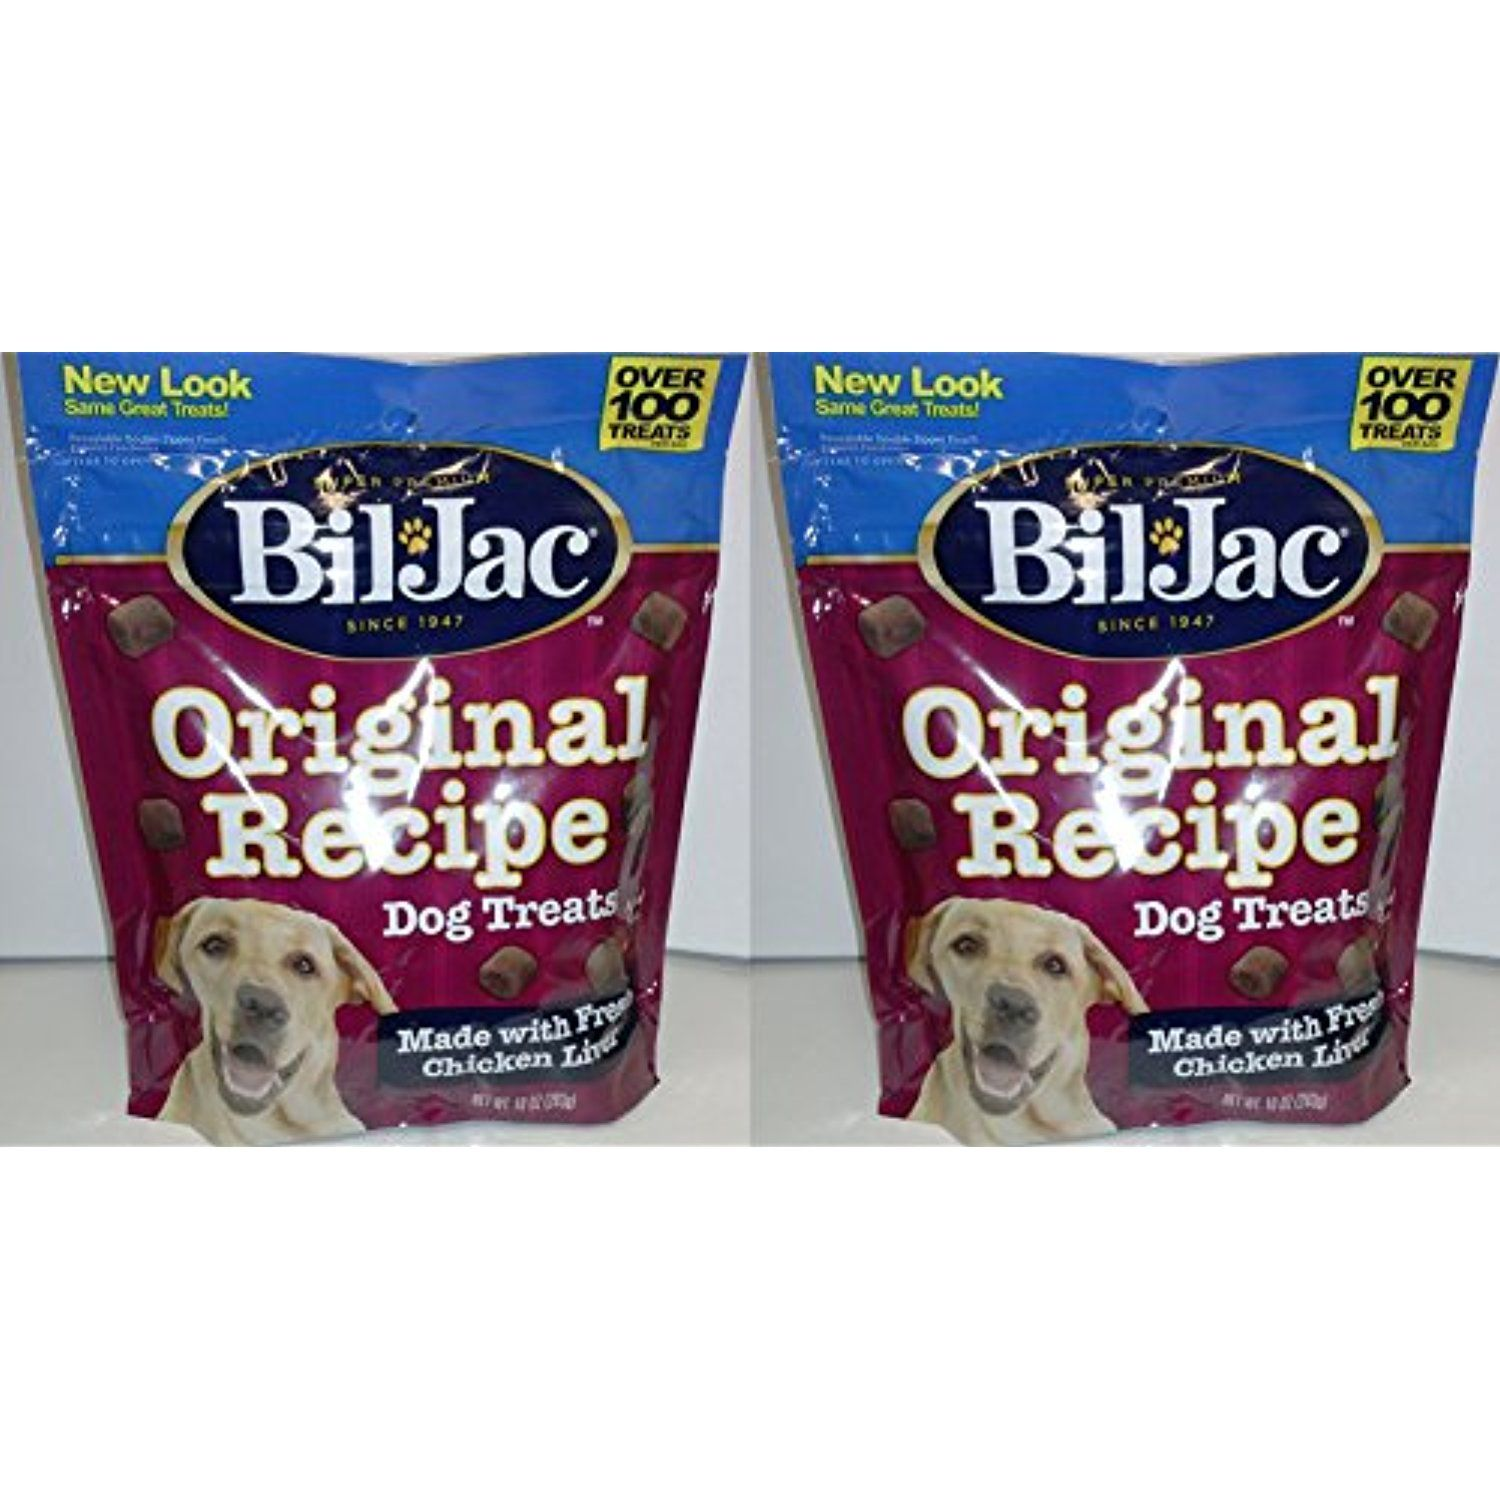 graphic about Bil-jac Coupons Printable titled 2 Pack) Bil Jac Authentic Recipe Rooster Liver Canine Snacks